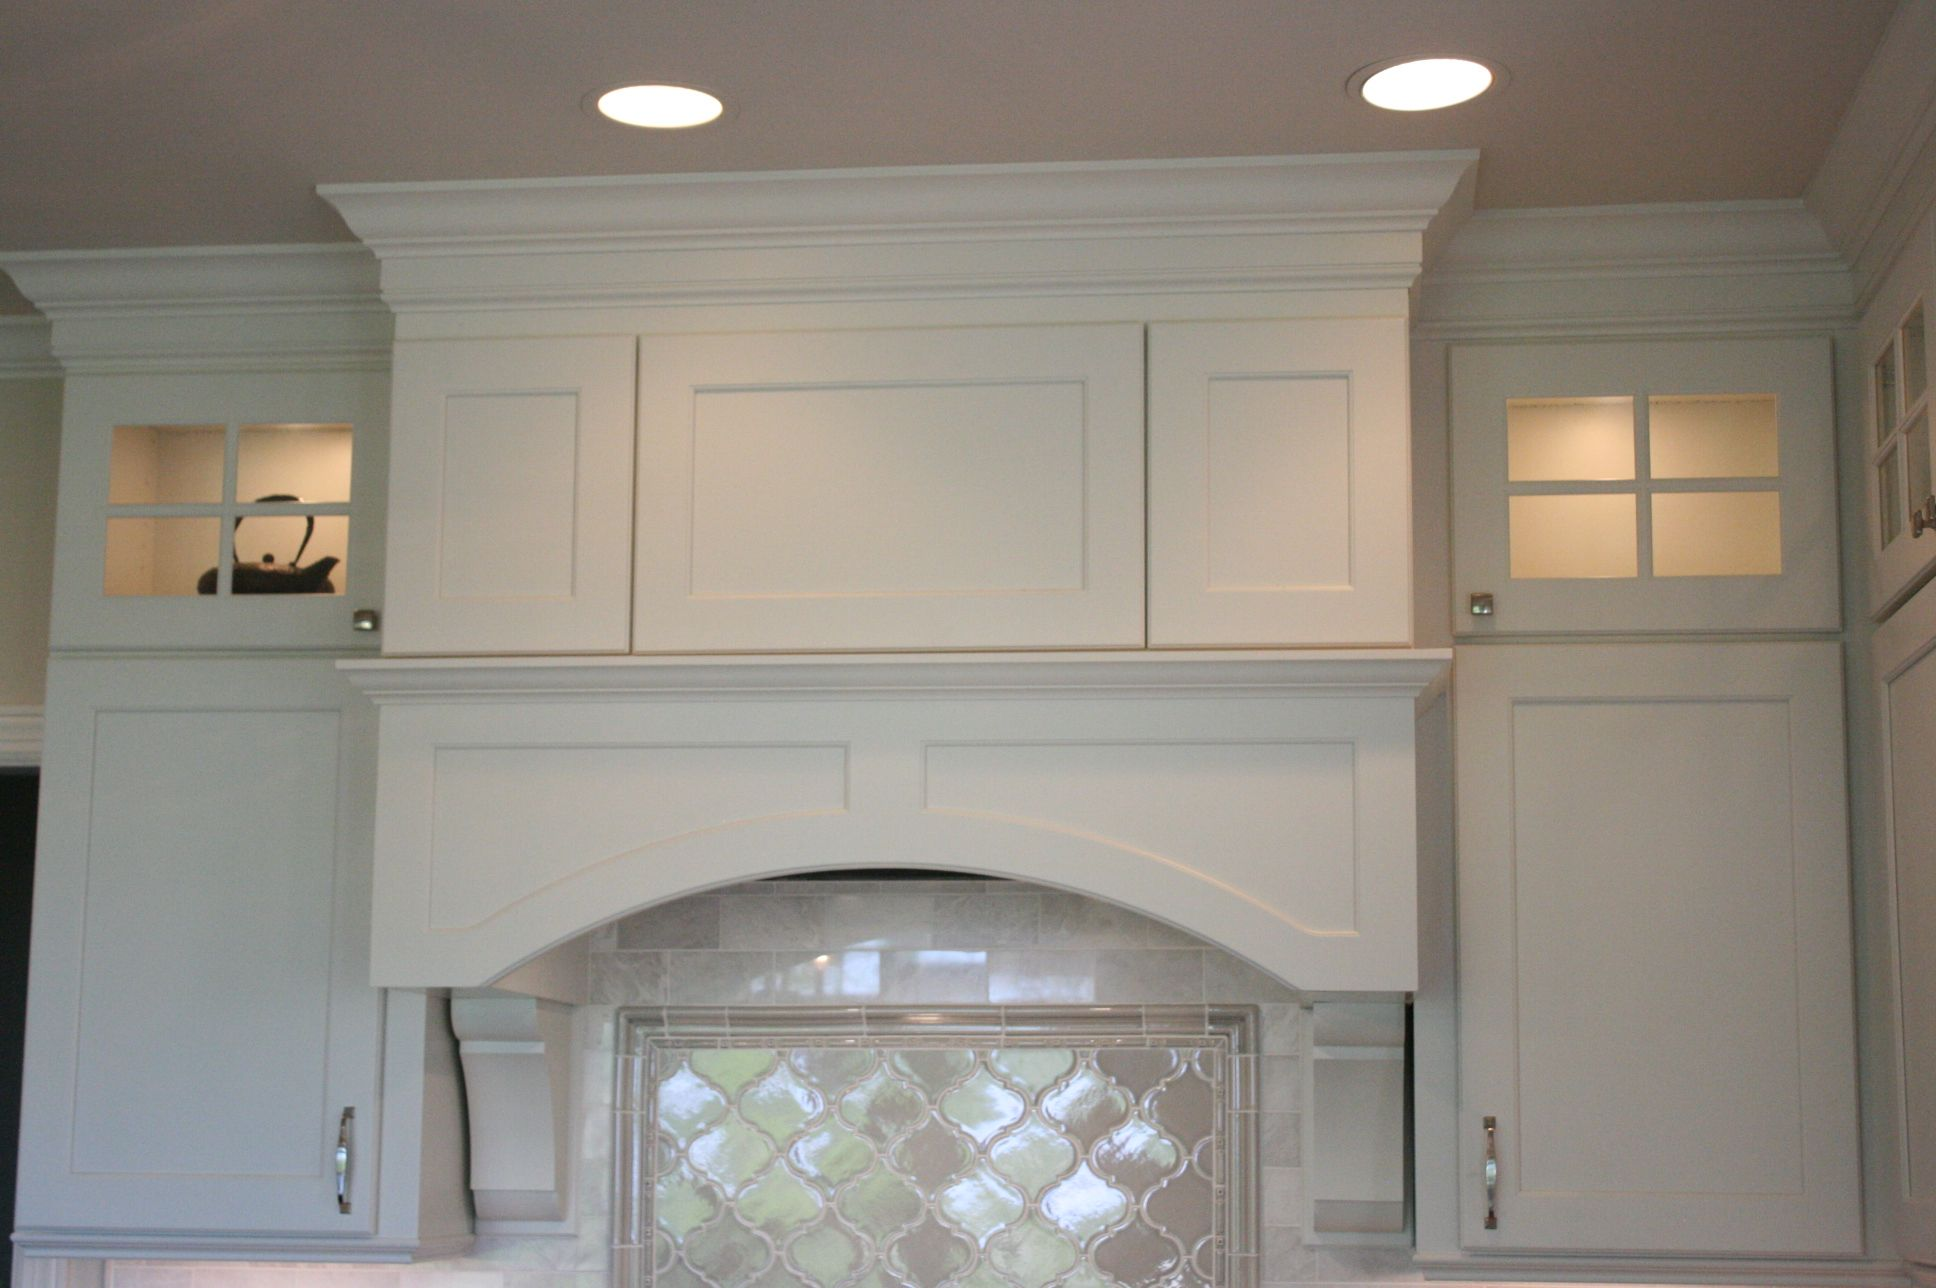 Crestwood Cabinetry. Canton door style in Icing opaque stain. Flat panel arched valance with & Crestwood Cabinetry. Canton door style in Icing opaque stain. Flat ...